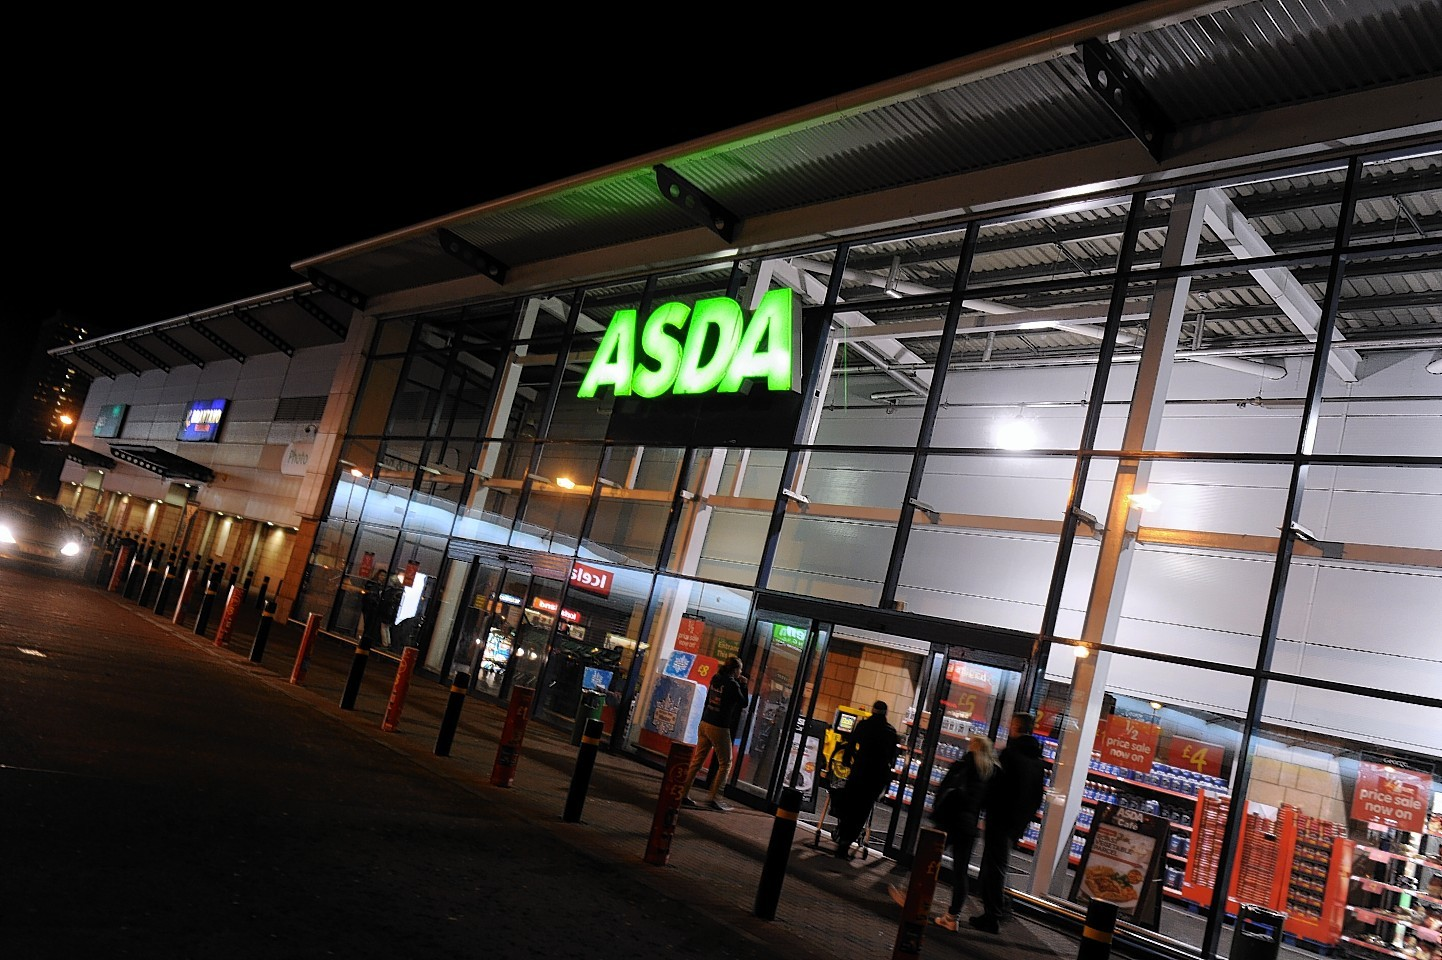 Singh was arrested at the Asda shop at Beach Boulevard in Aberdeen.